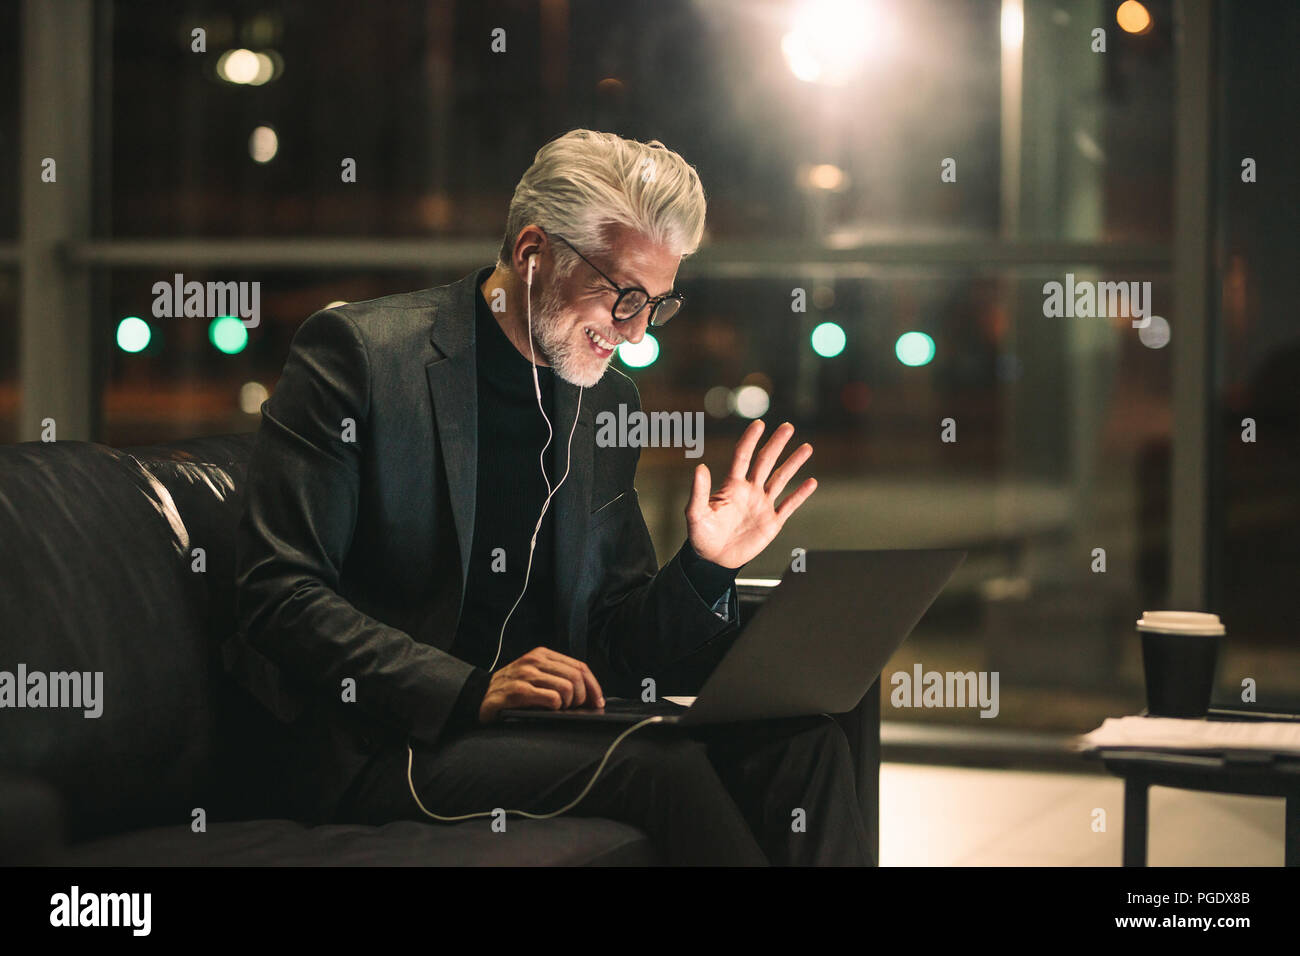 Middle aged man on video call using a laptop in office lobby. Smiling businessman late at night in office making gestures on a video call. - Stock Image